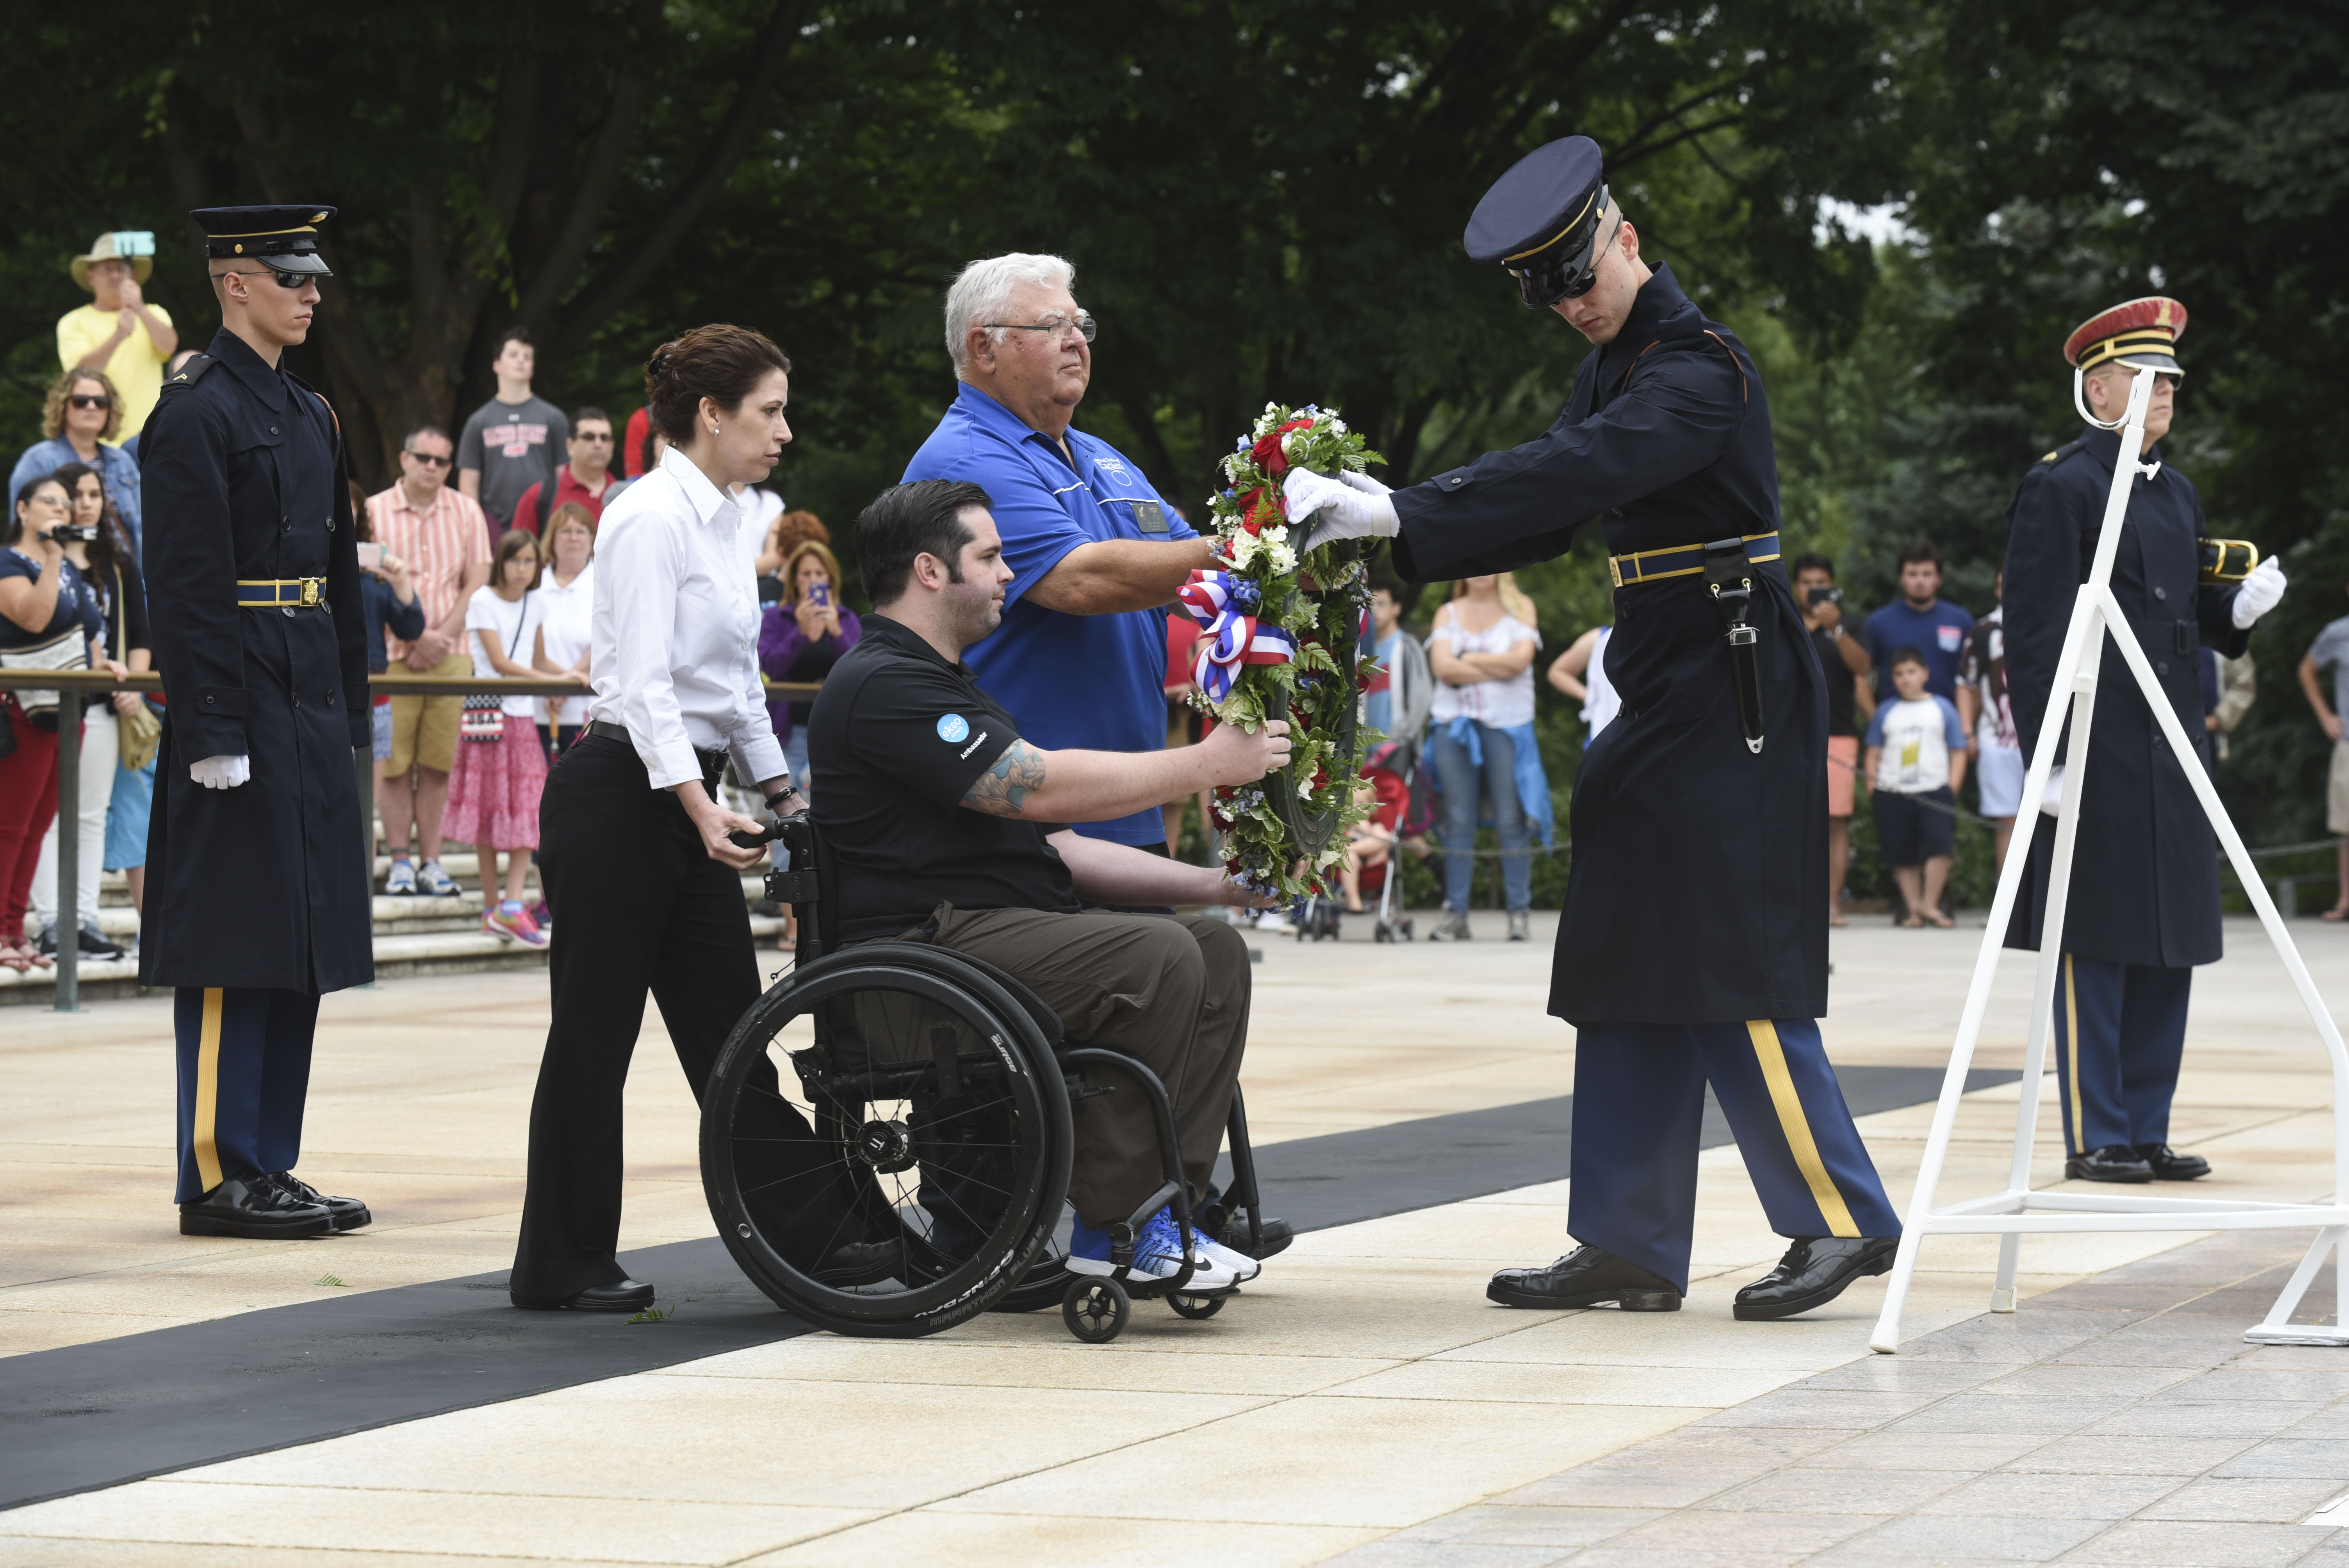 The Fraternal Order of Eagles and Ekso Bionics Highlight the Revolutionary Ekso GT Suit Allowing Paralyzed Veterans to Walk July 4 at Arlington Cemetery